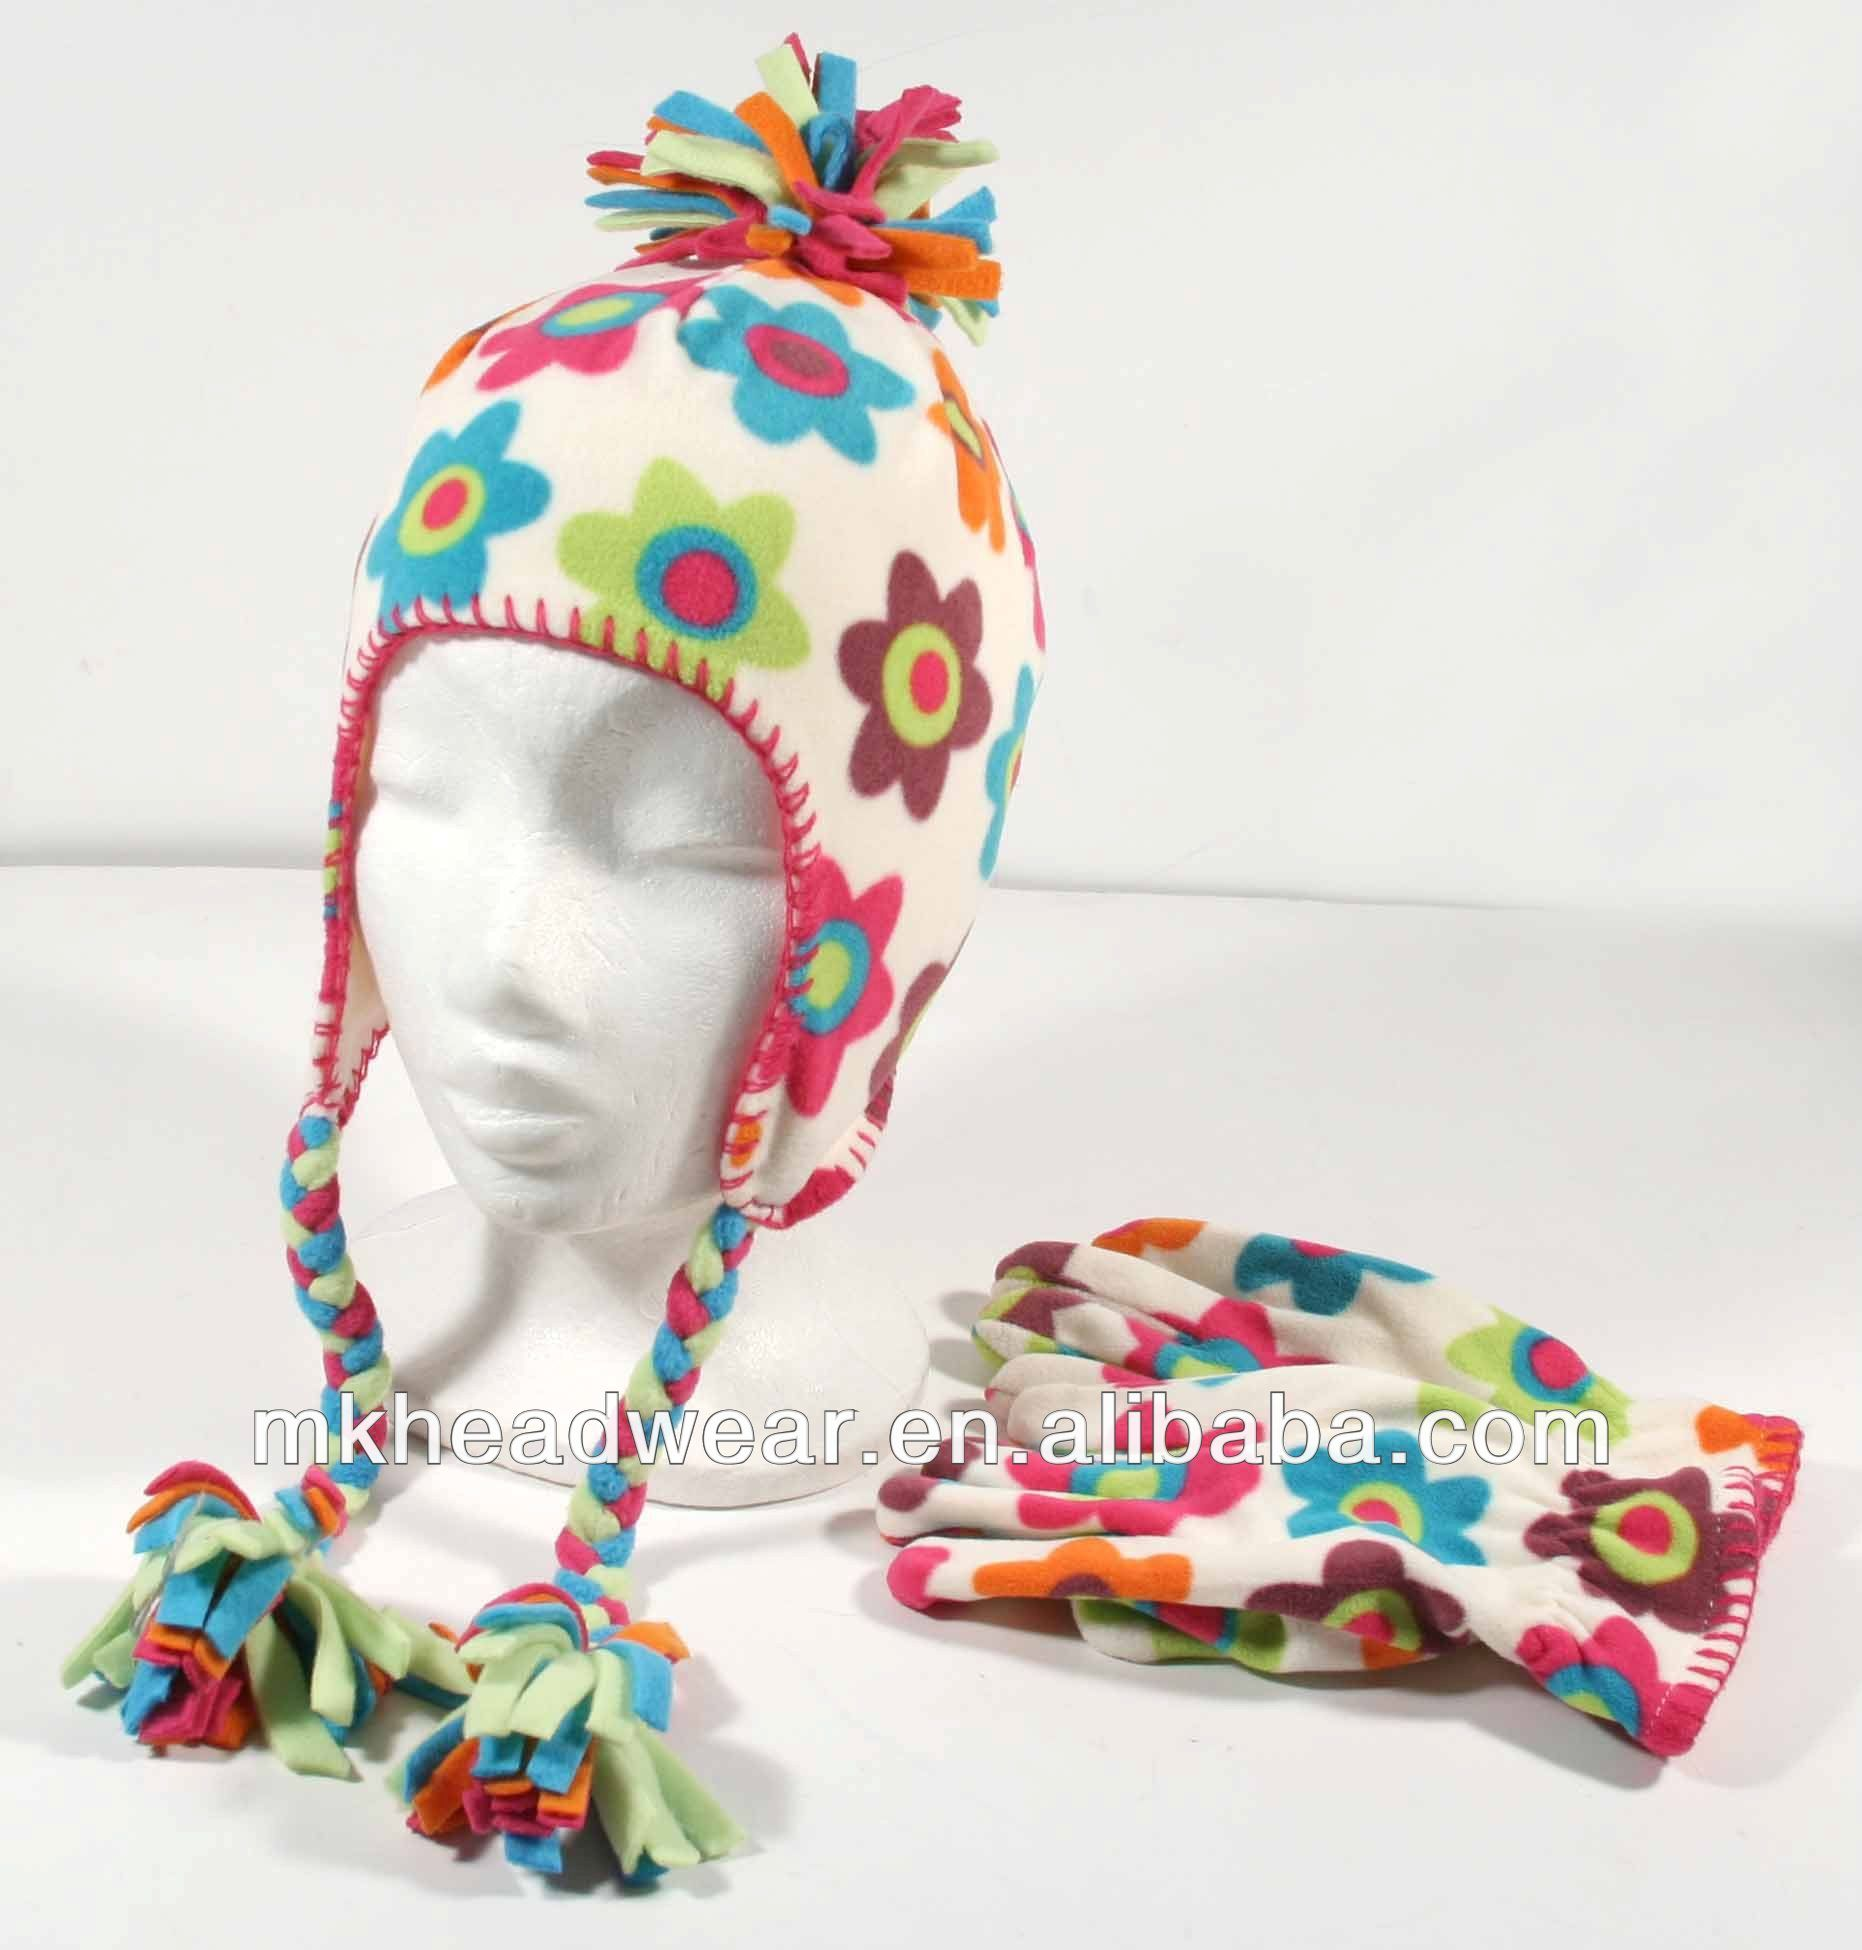 Winter Polar Fleece Earflap Hat And Glove Set With All Over Flower ...